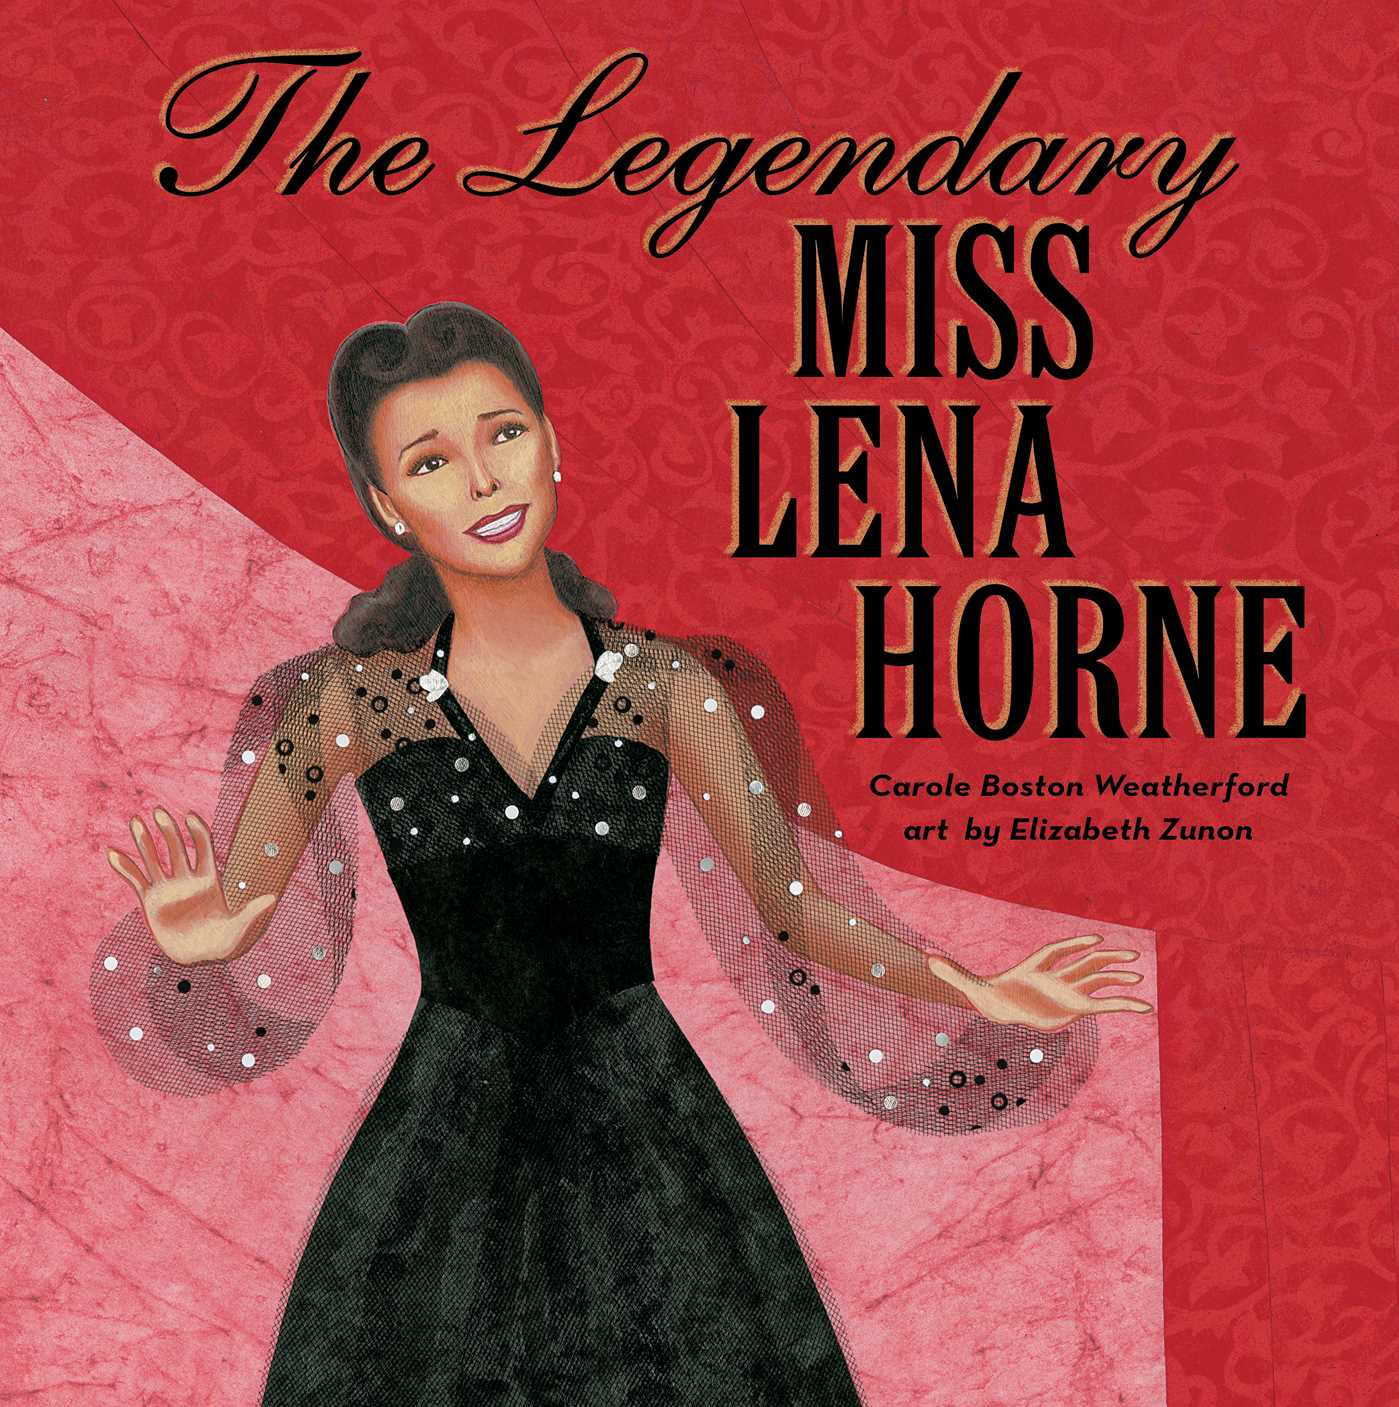 The legendary miss lena horne 9781481468244 hr